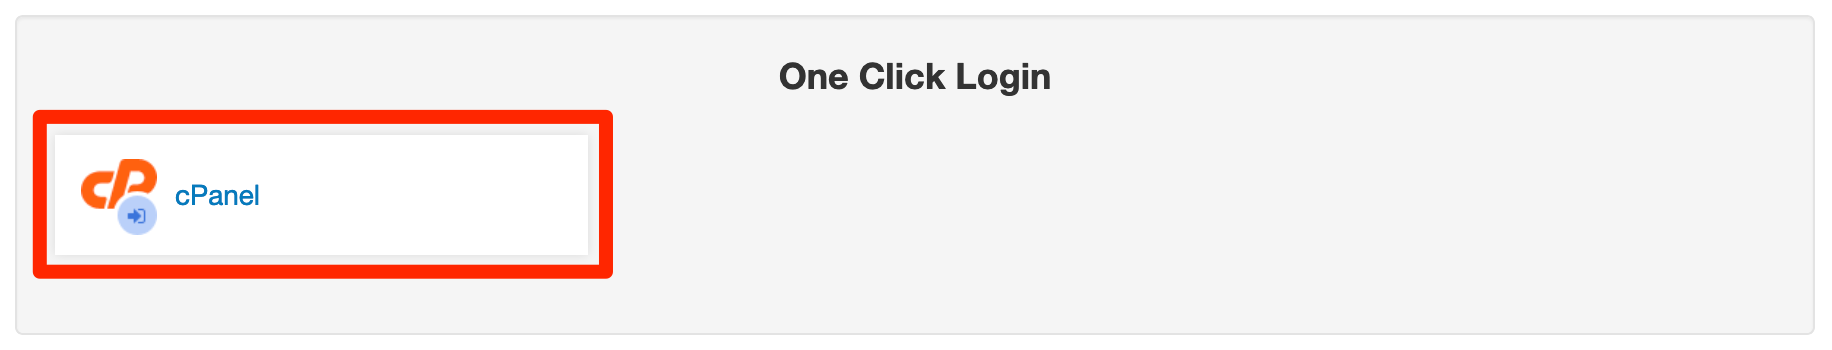 One-click login to cPanel